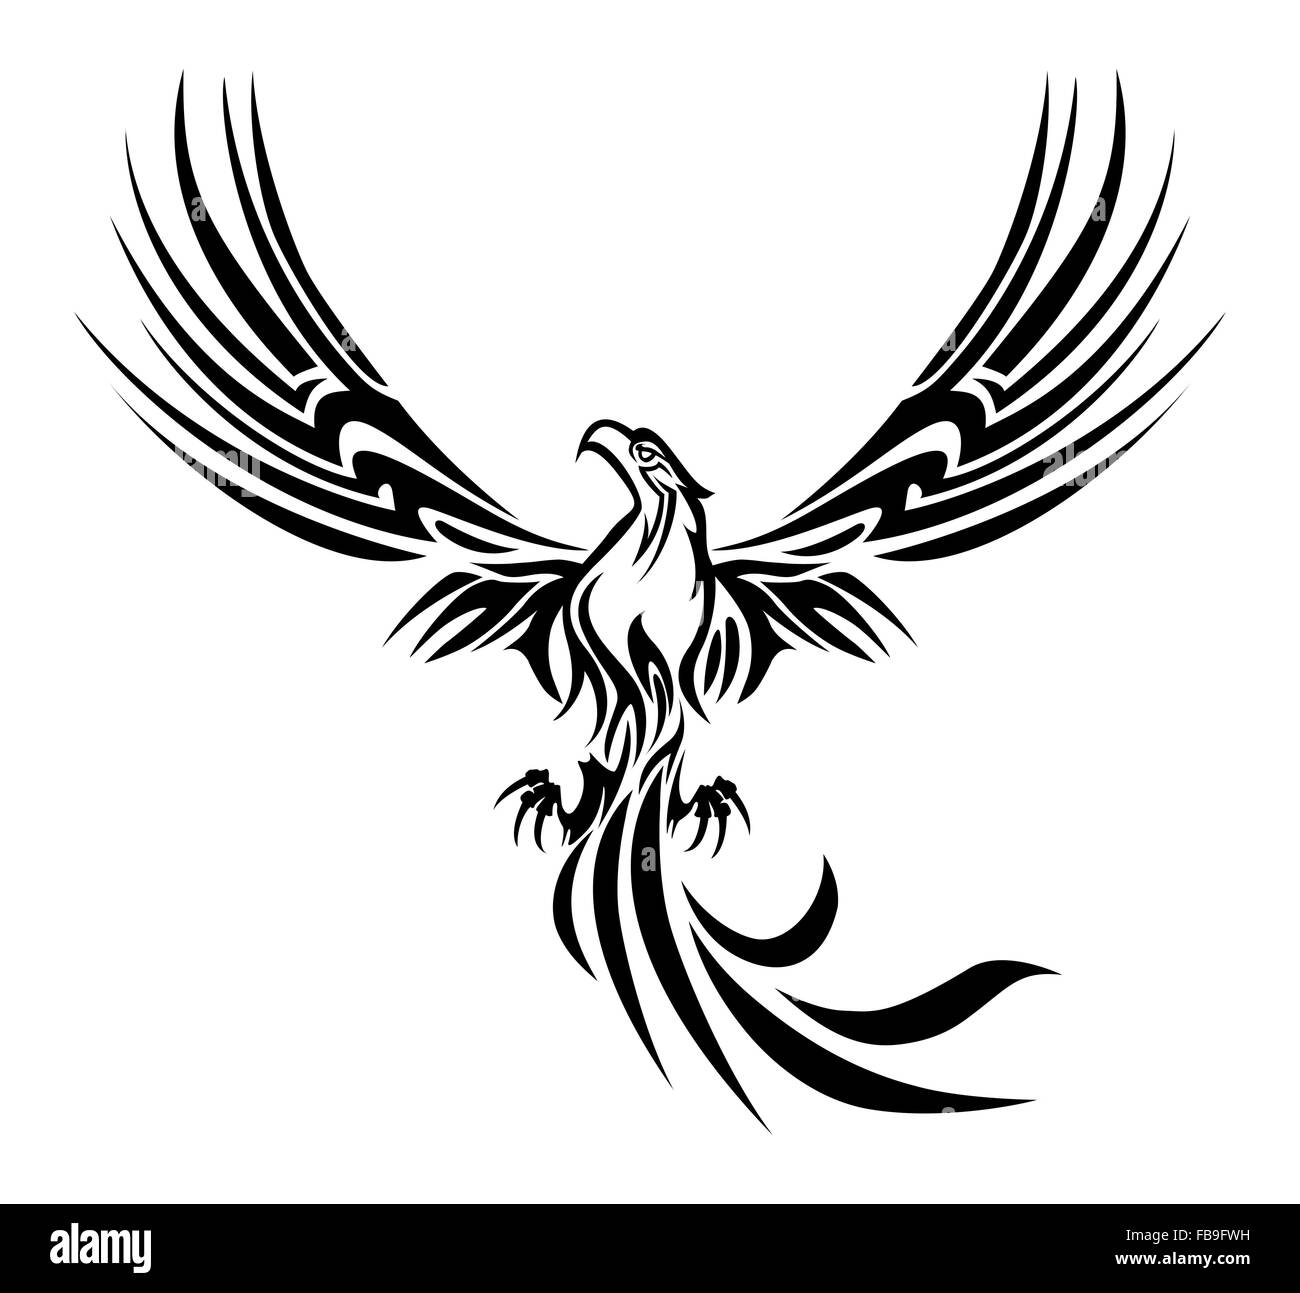 illustrations of a concept myth bird phoenix rising from the ashes tattoo on isolated white background - Stock Image